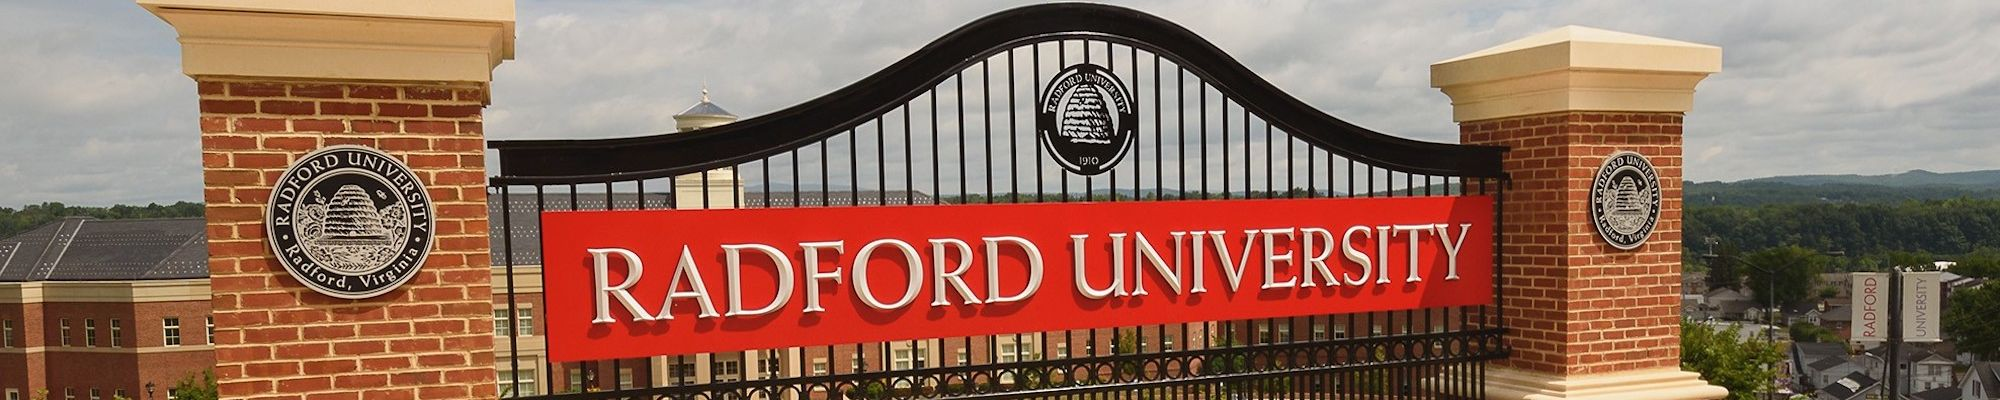 Radford University sign at gate